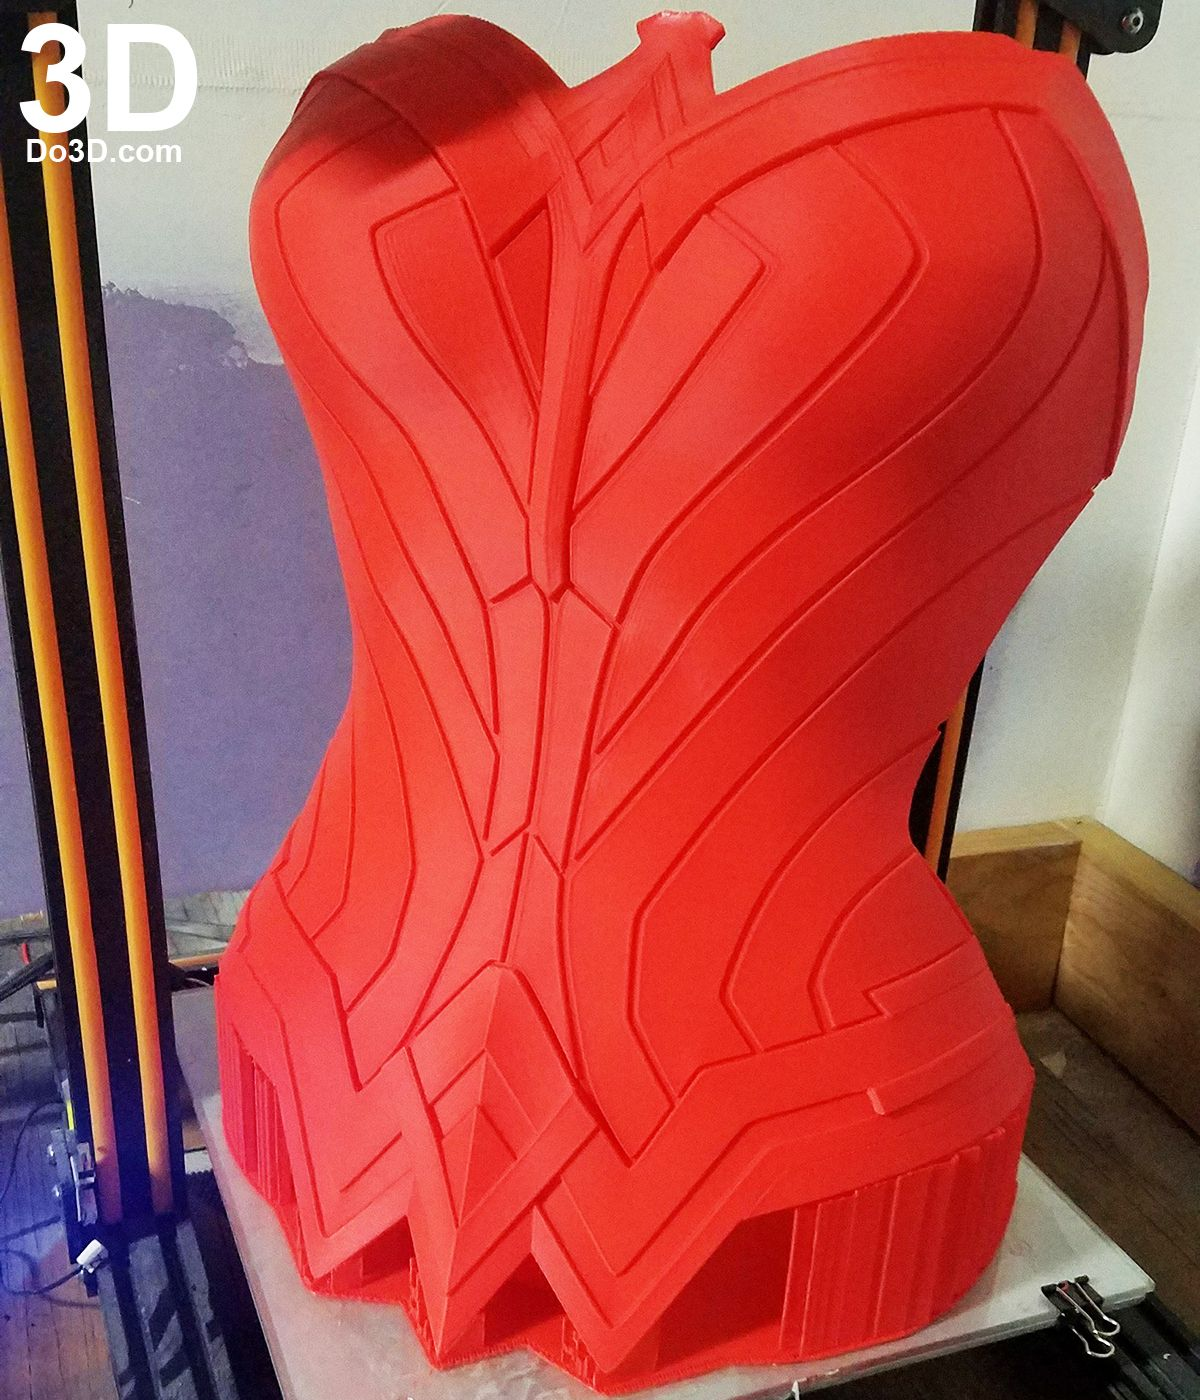 3d printable model of wonder woman full body armor from batman v 3d printable model of wonder woman full body armor from batman v superman dawn of pronofoot35fo Choice Image